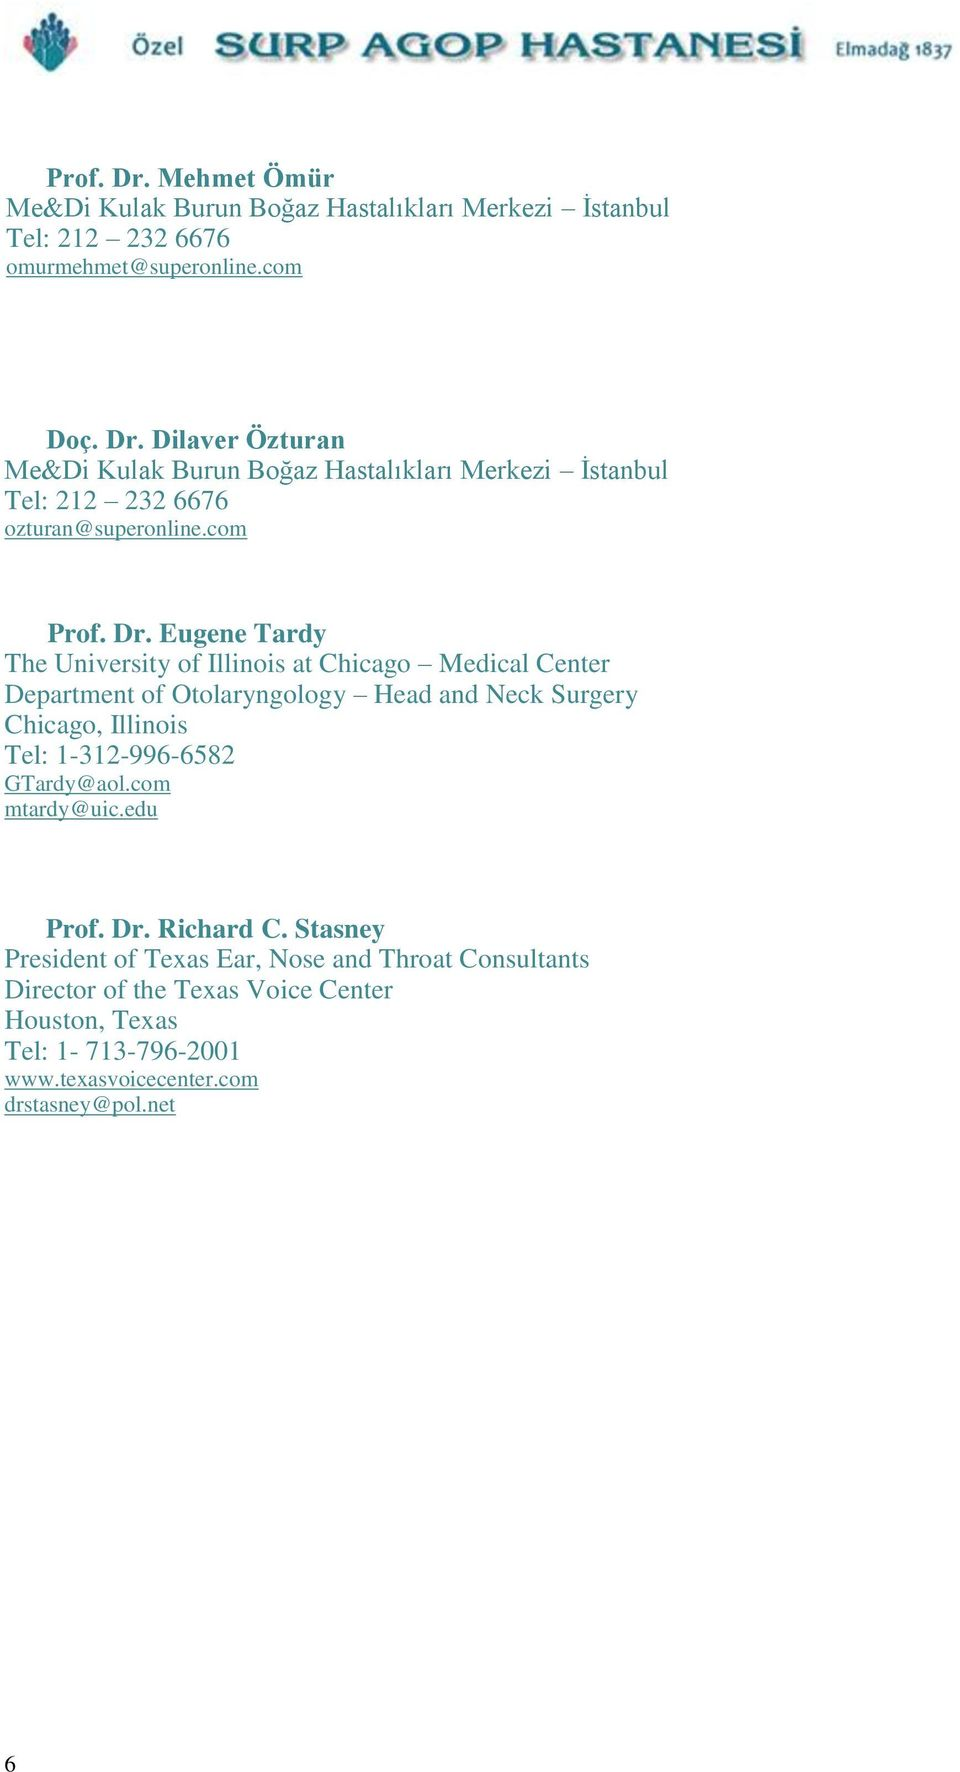 Eugene Tardy The University of Illinois at Chicago Medical Center Department of Otolaryngology Head and Neck Surgery Chicago, Illinois Tel: 1-312-996-6582